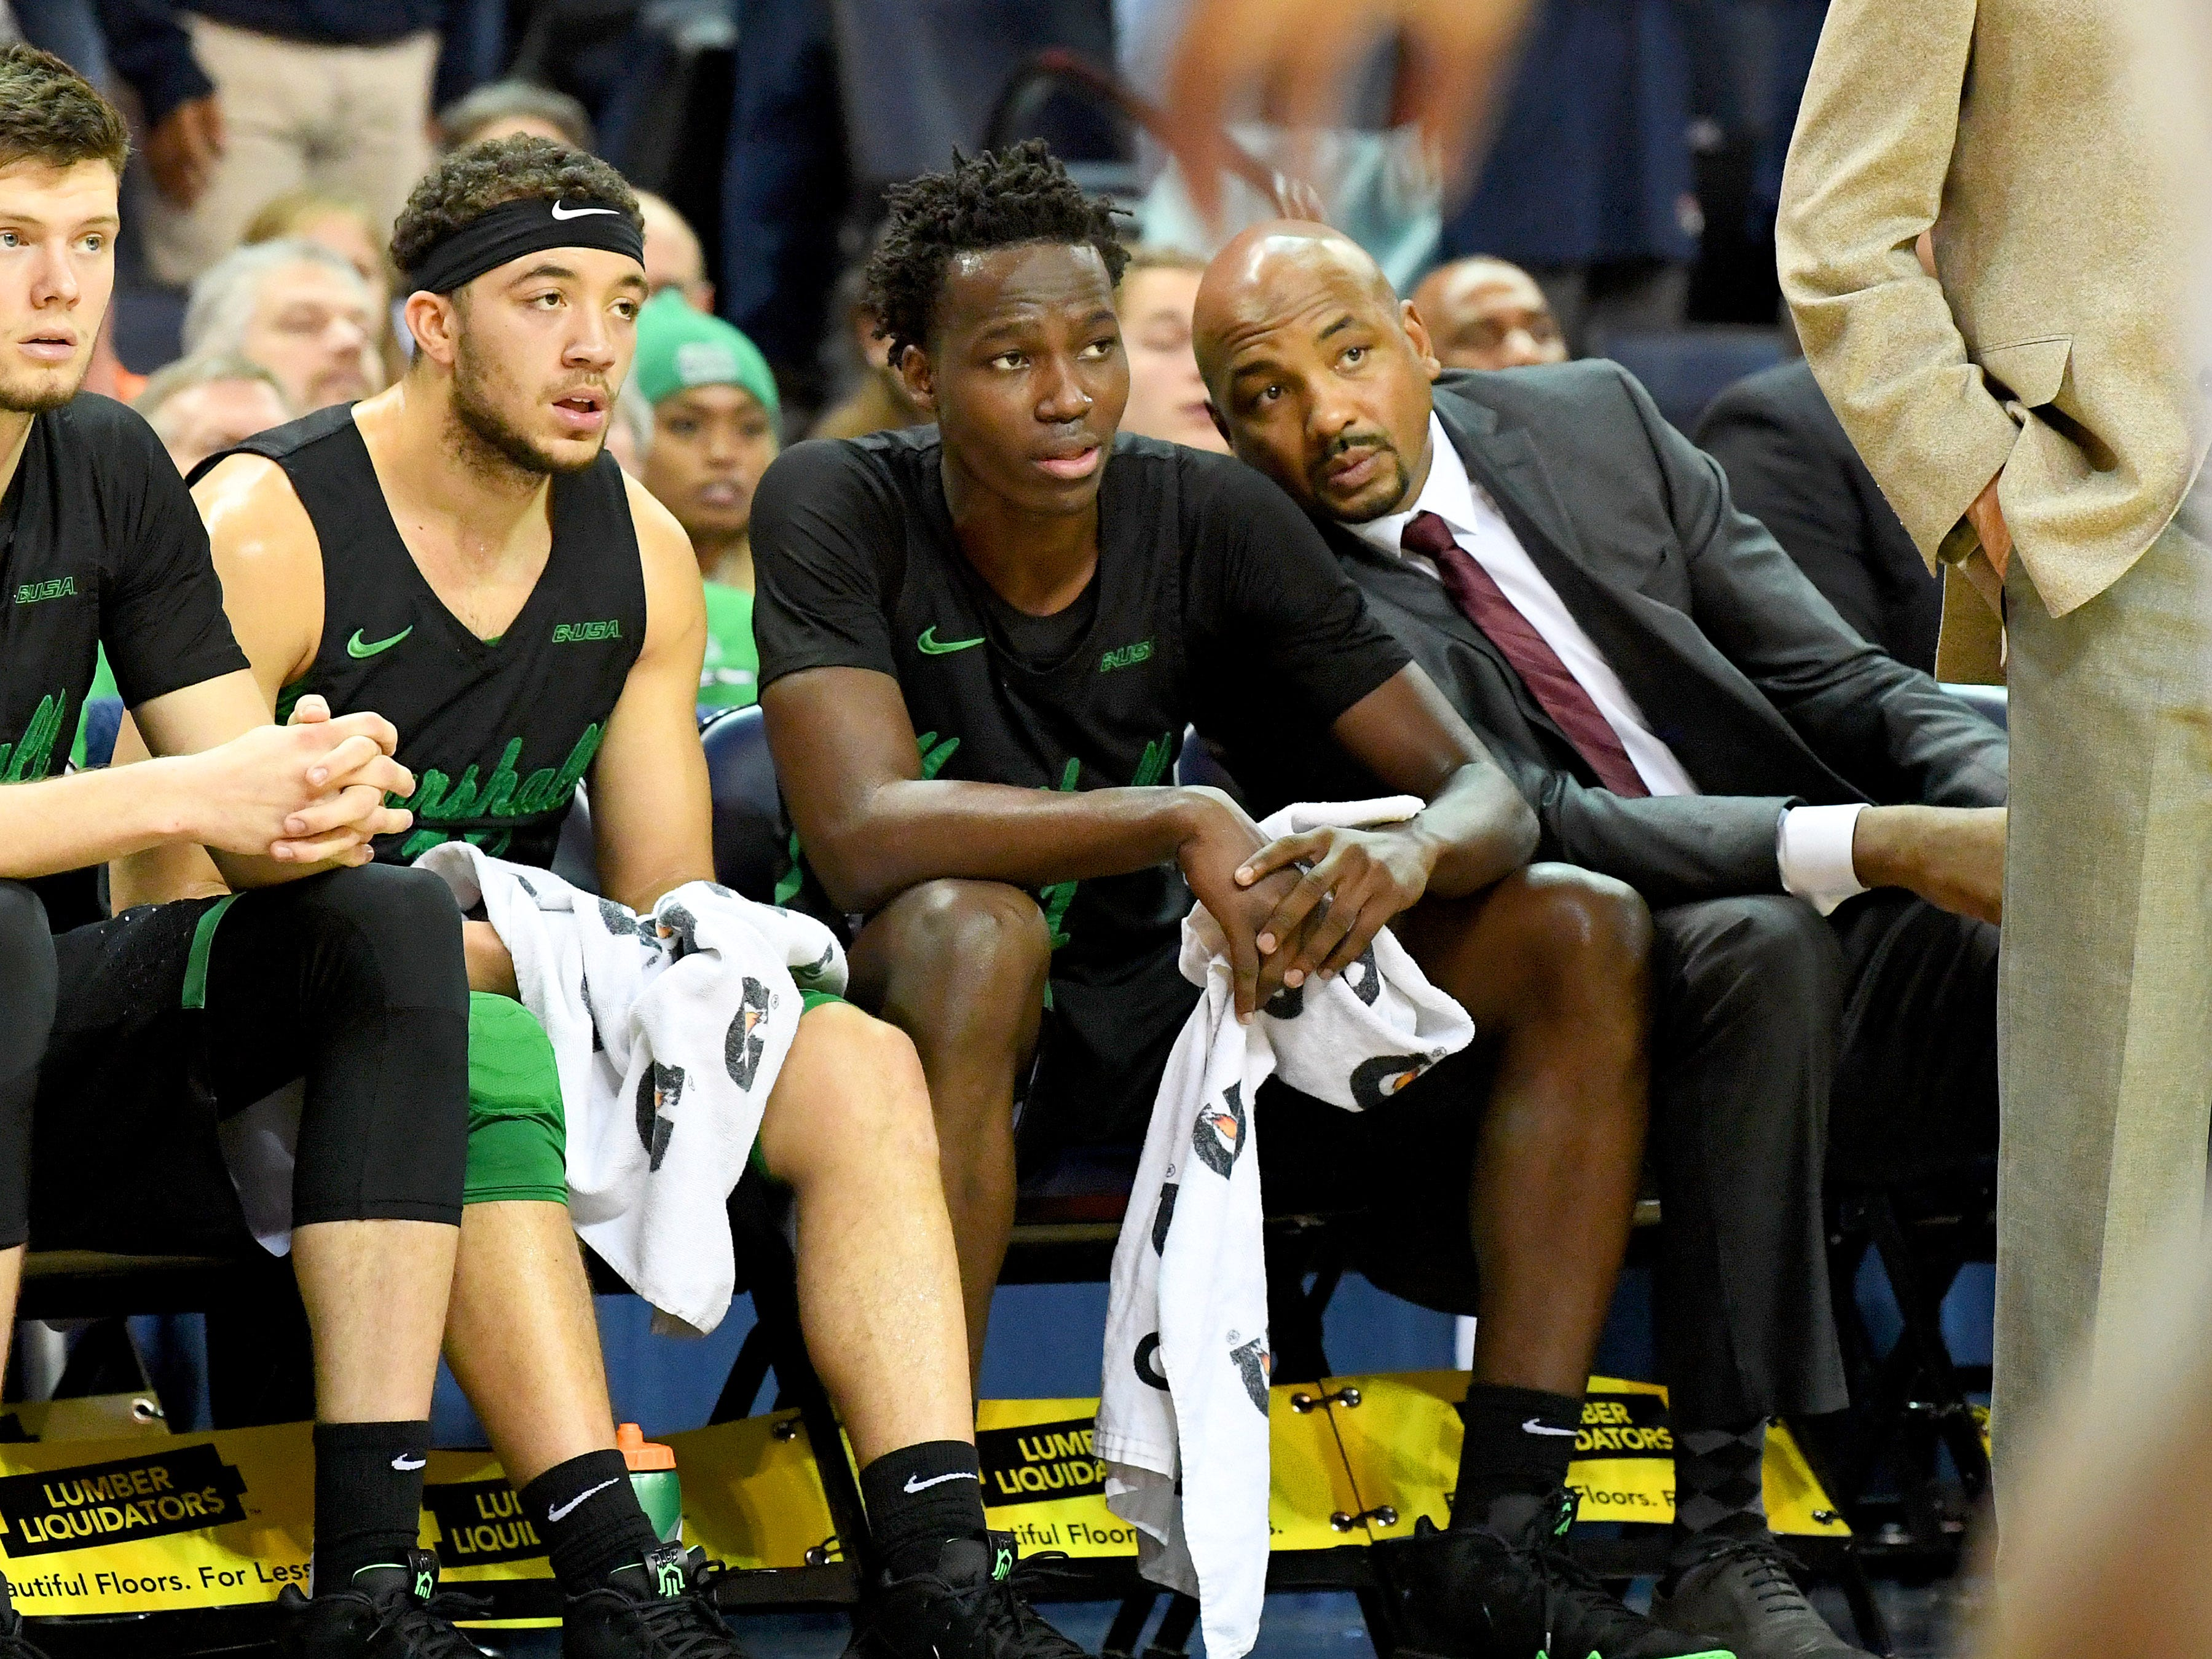 Marshall's Darius George (center), former R.E. Lee star, watches the action on the court from the bench during their game against University of Virginia, played at the John Paul Jones Arena on Dec. 31, 2016.